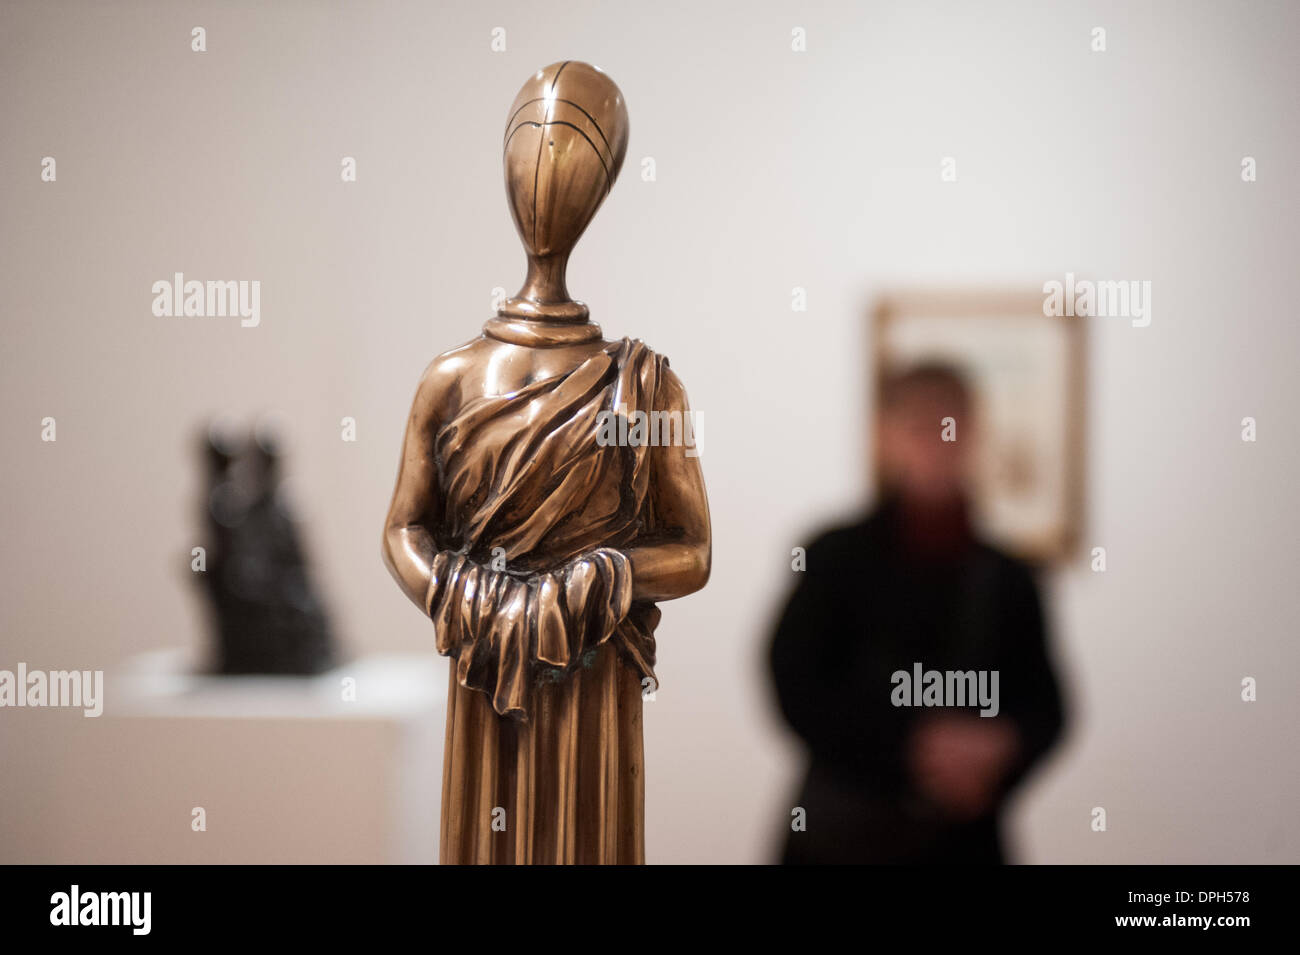 """London, UK - 14 January 2014: a gilded bronze sculture called """"The Disquieting Muse, 1970"""" is on display at the Stock Photo"""